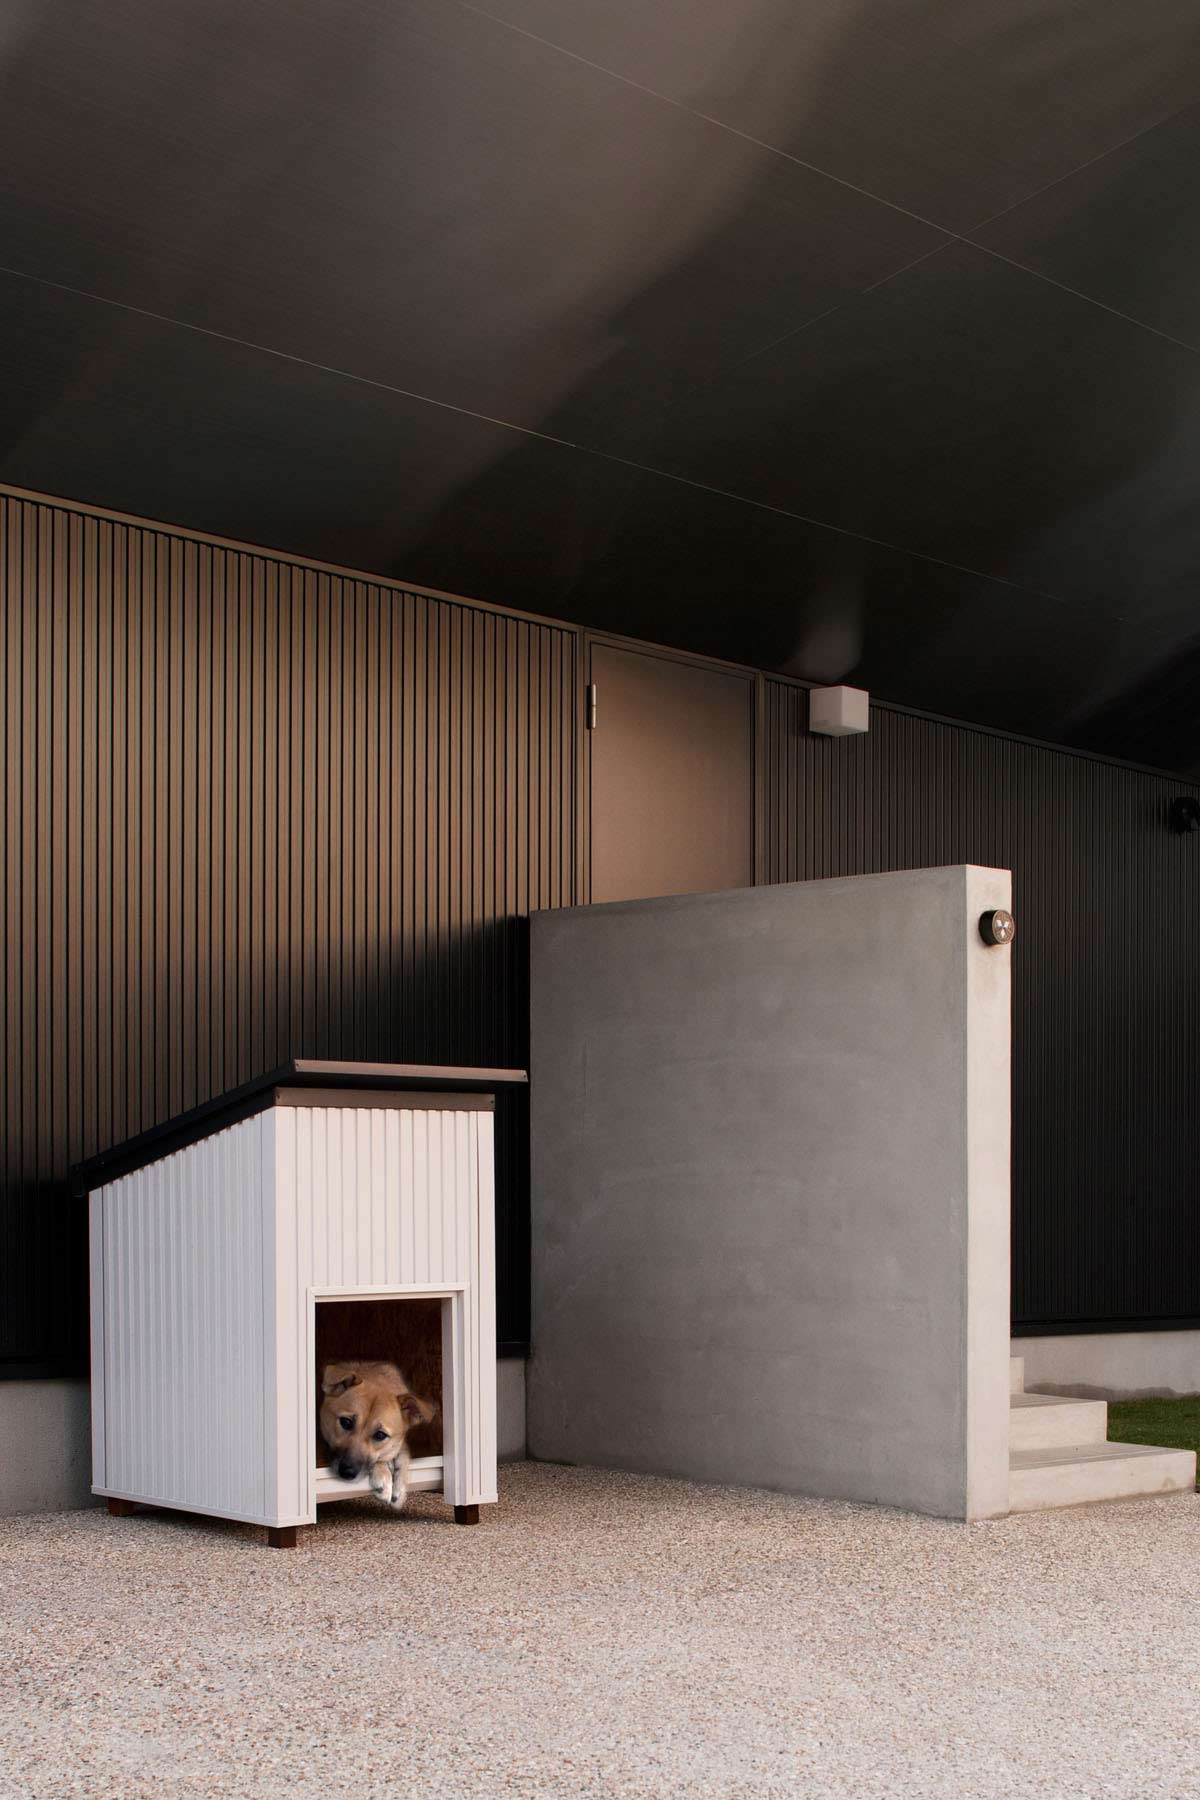 Dog House, Hansha Reflection House, Nagoya, Japan